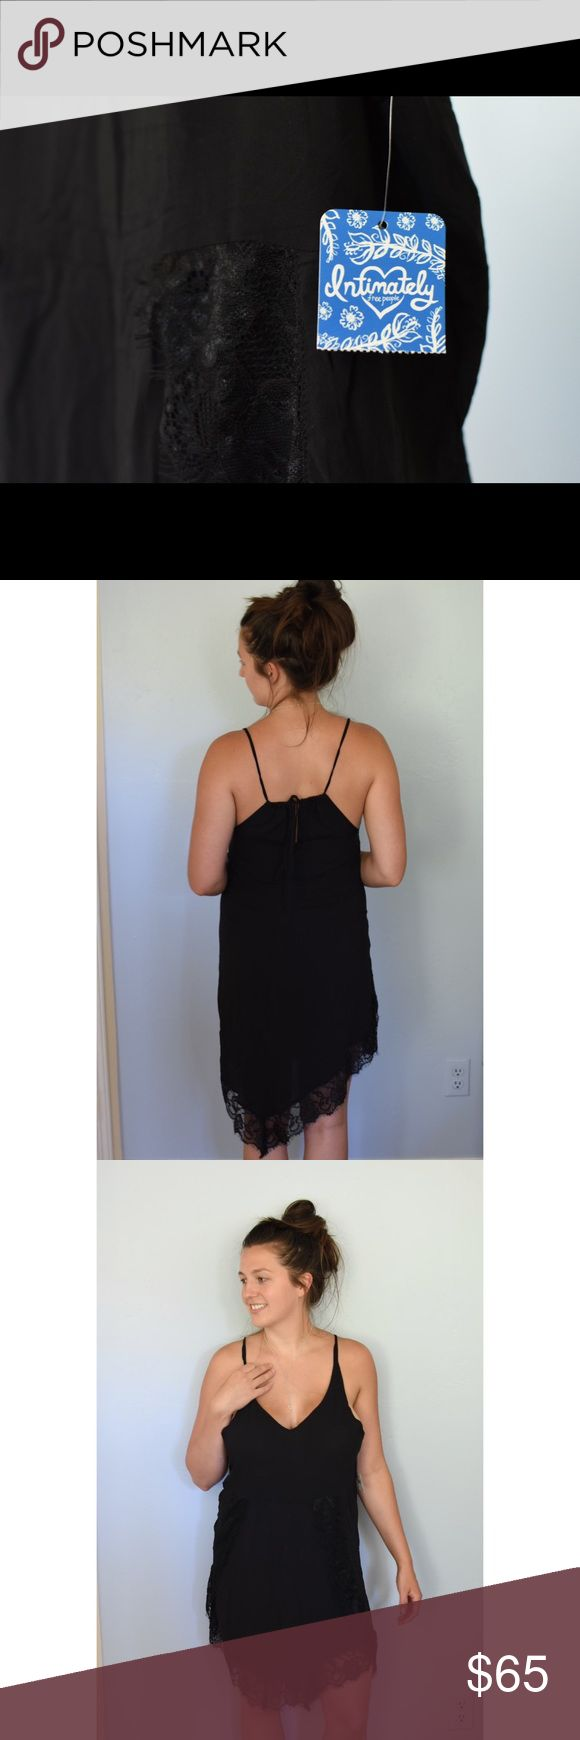 F R E E P E O P L E | s l i p Free people Kendall trapeze lace slip, silk to touch dress that can be worn for an intimate night in or for a day out on the town as well as a romantic night out. Super versatile dress with drawstrings at the back of neck to raise or lower the dress at your comfort. XS (0-2) and M (8-10 Free People Intimates & Sleepwear Chemises & Slips